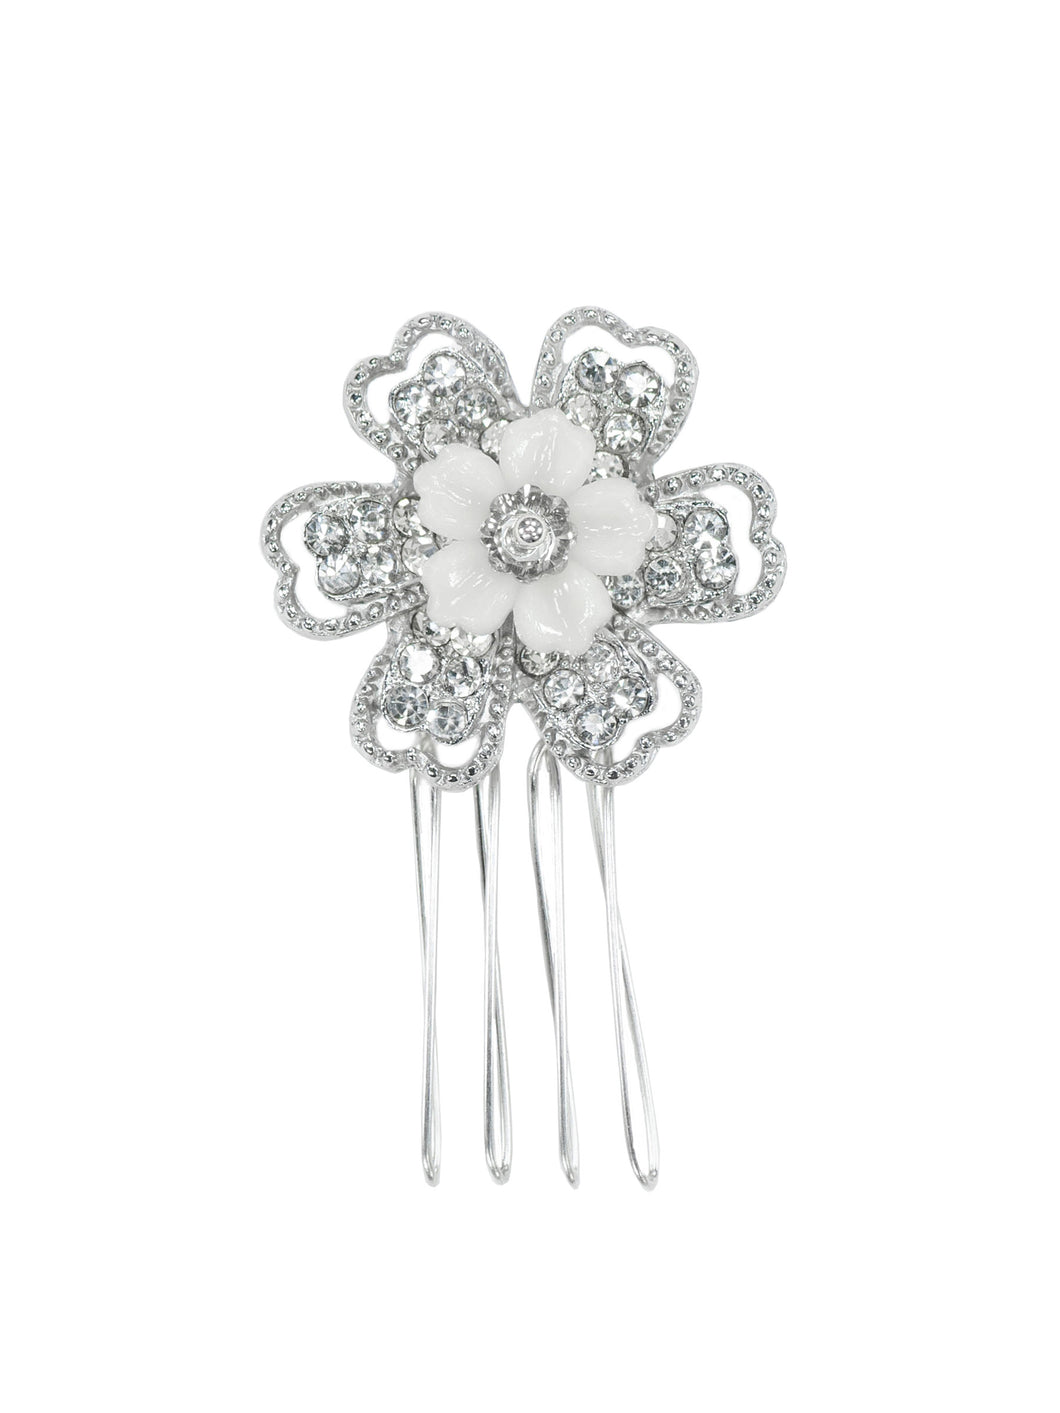 Opulence Rhinestone Single Flower Comb - Petite